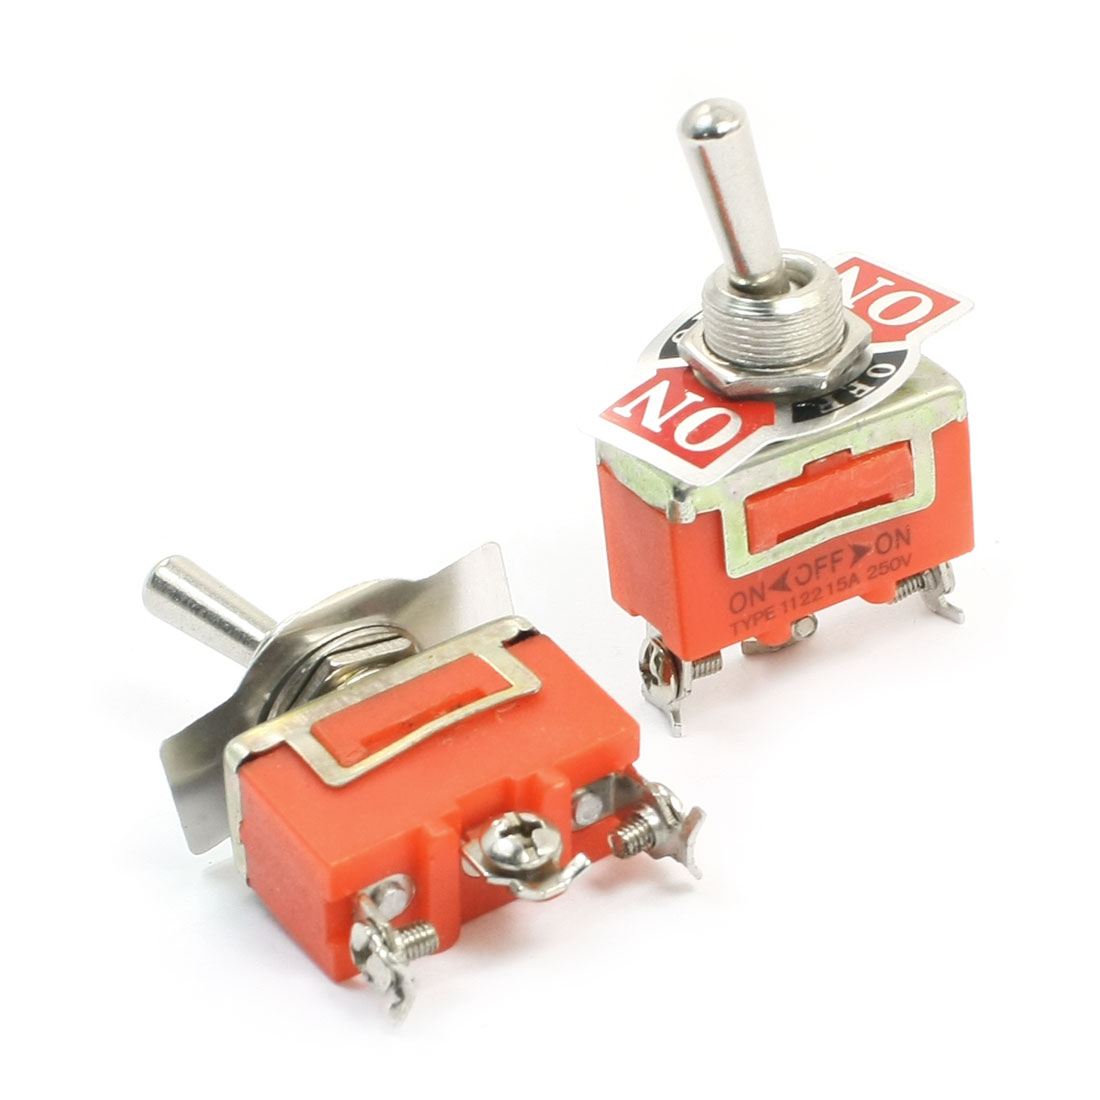 SPDT ON/OFF/ON 3 Position Power Control Toggle Switch AC 250V 15A E-TEN1122 2pcs